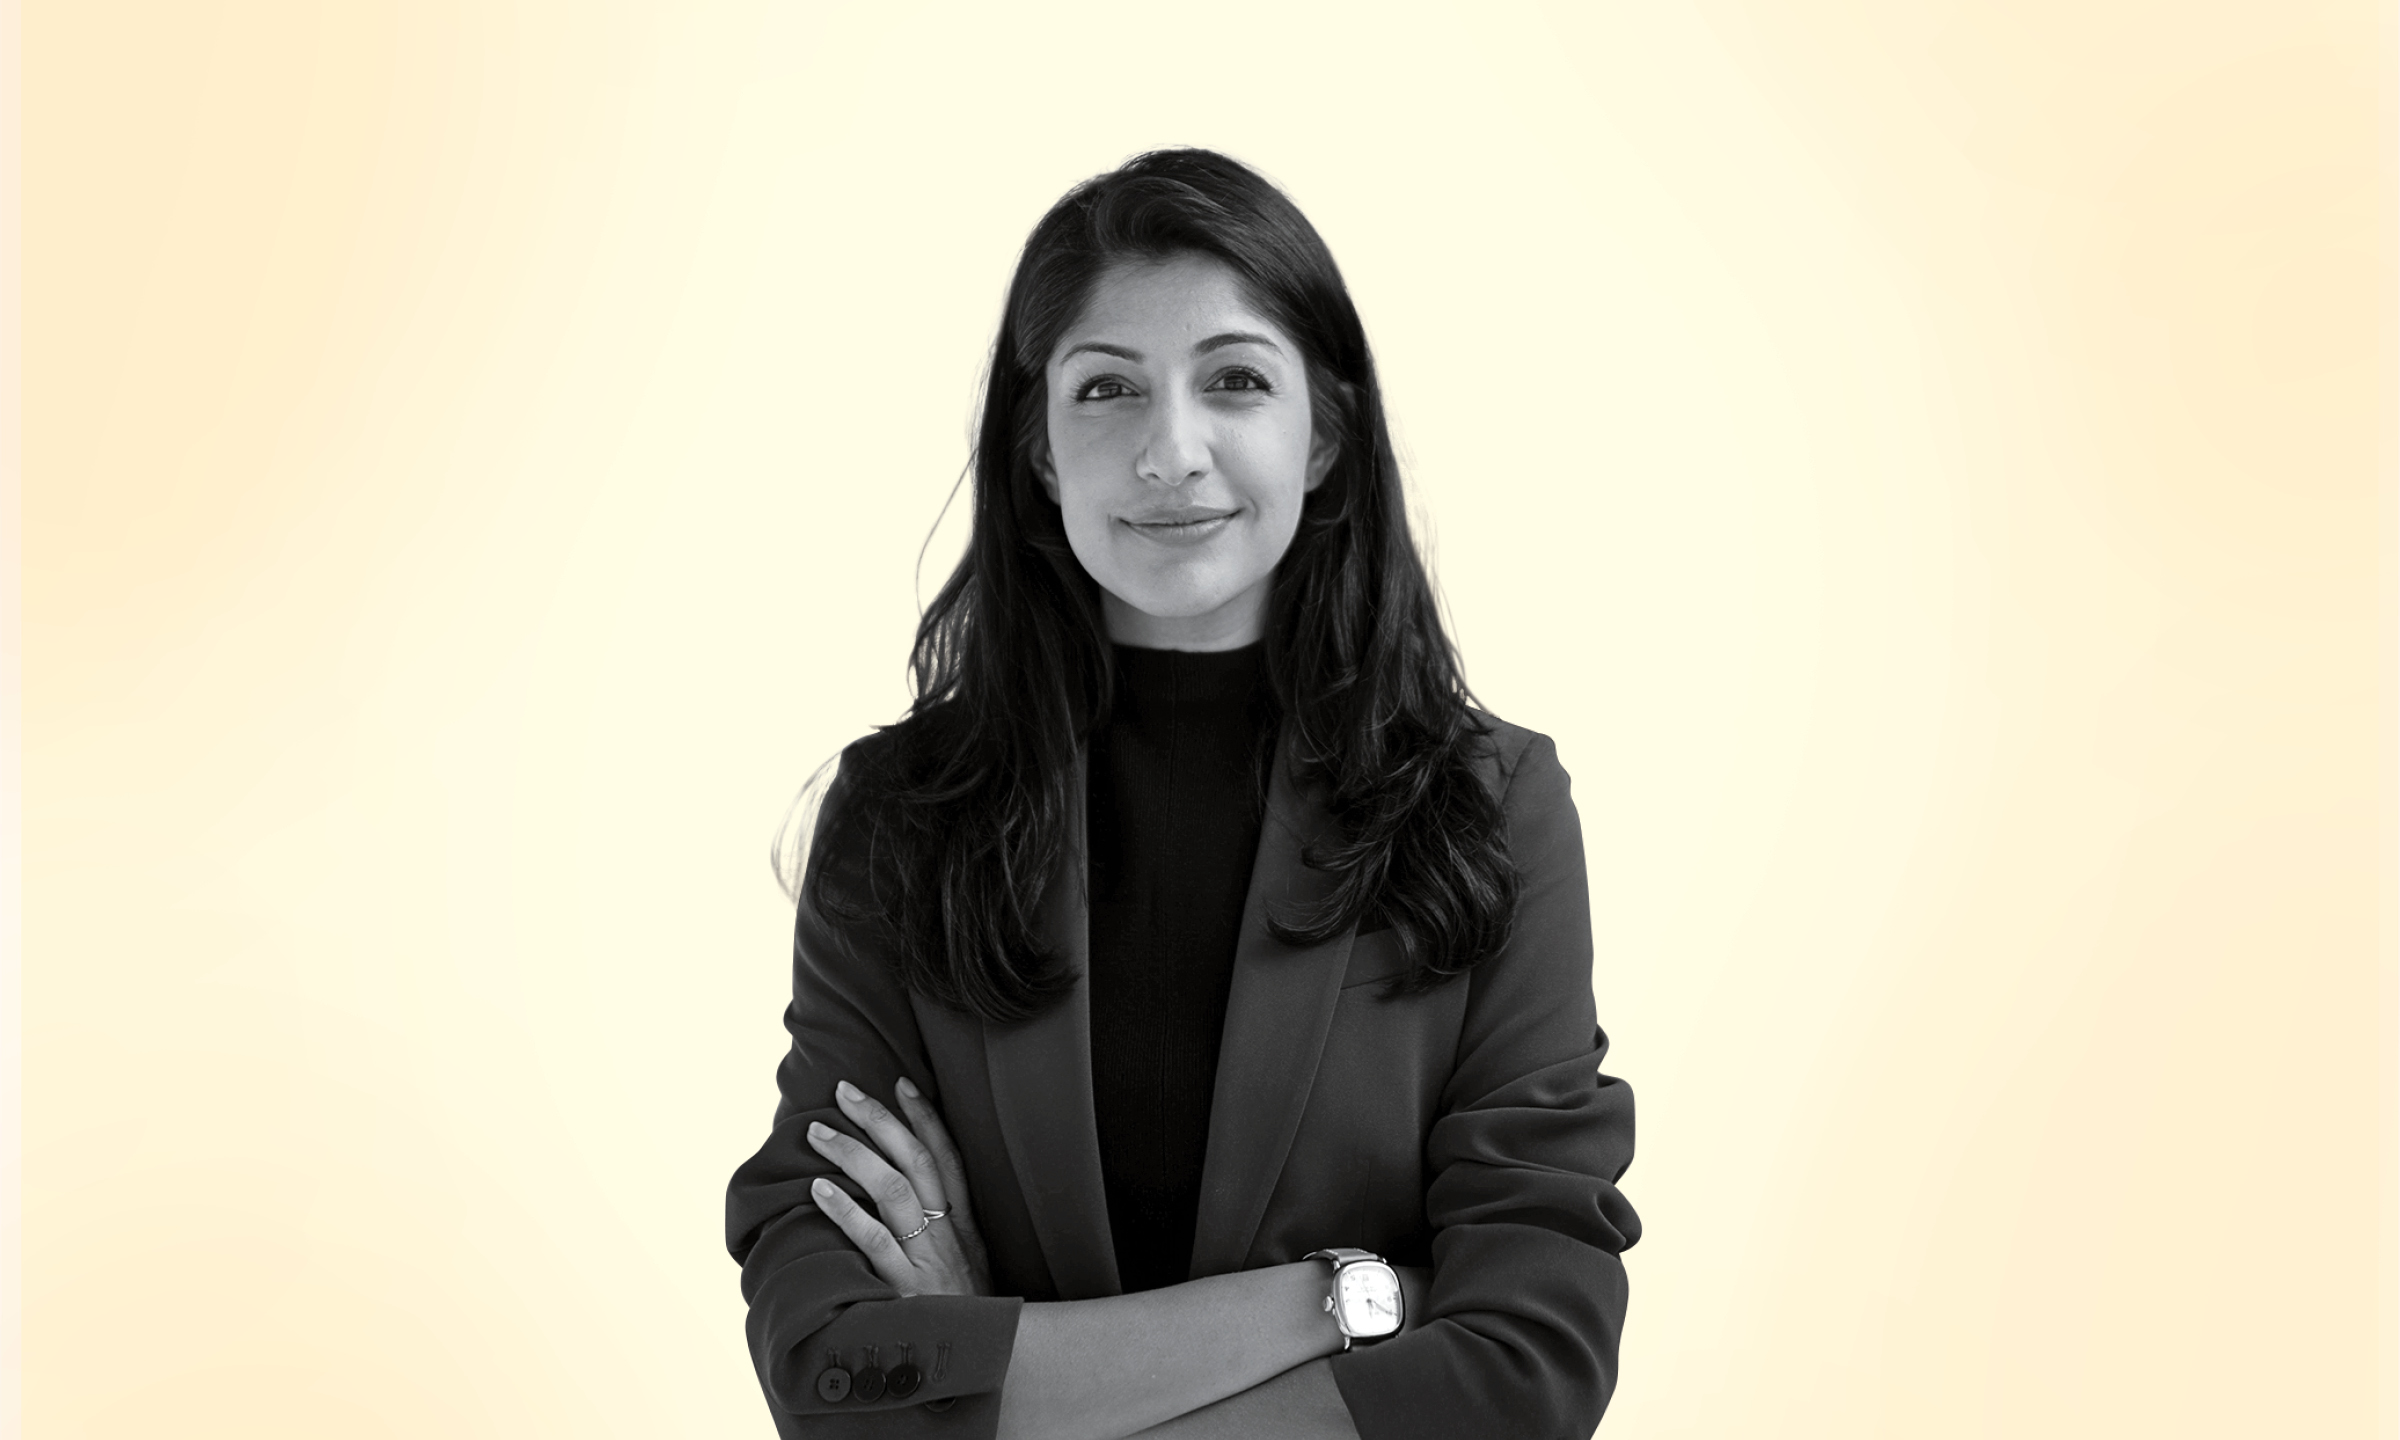 Anjali Sud is chief executive officer of Vimeo